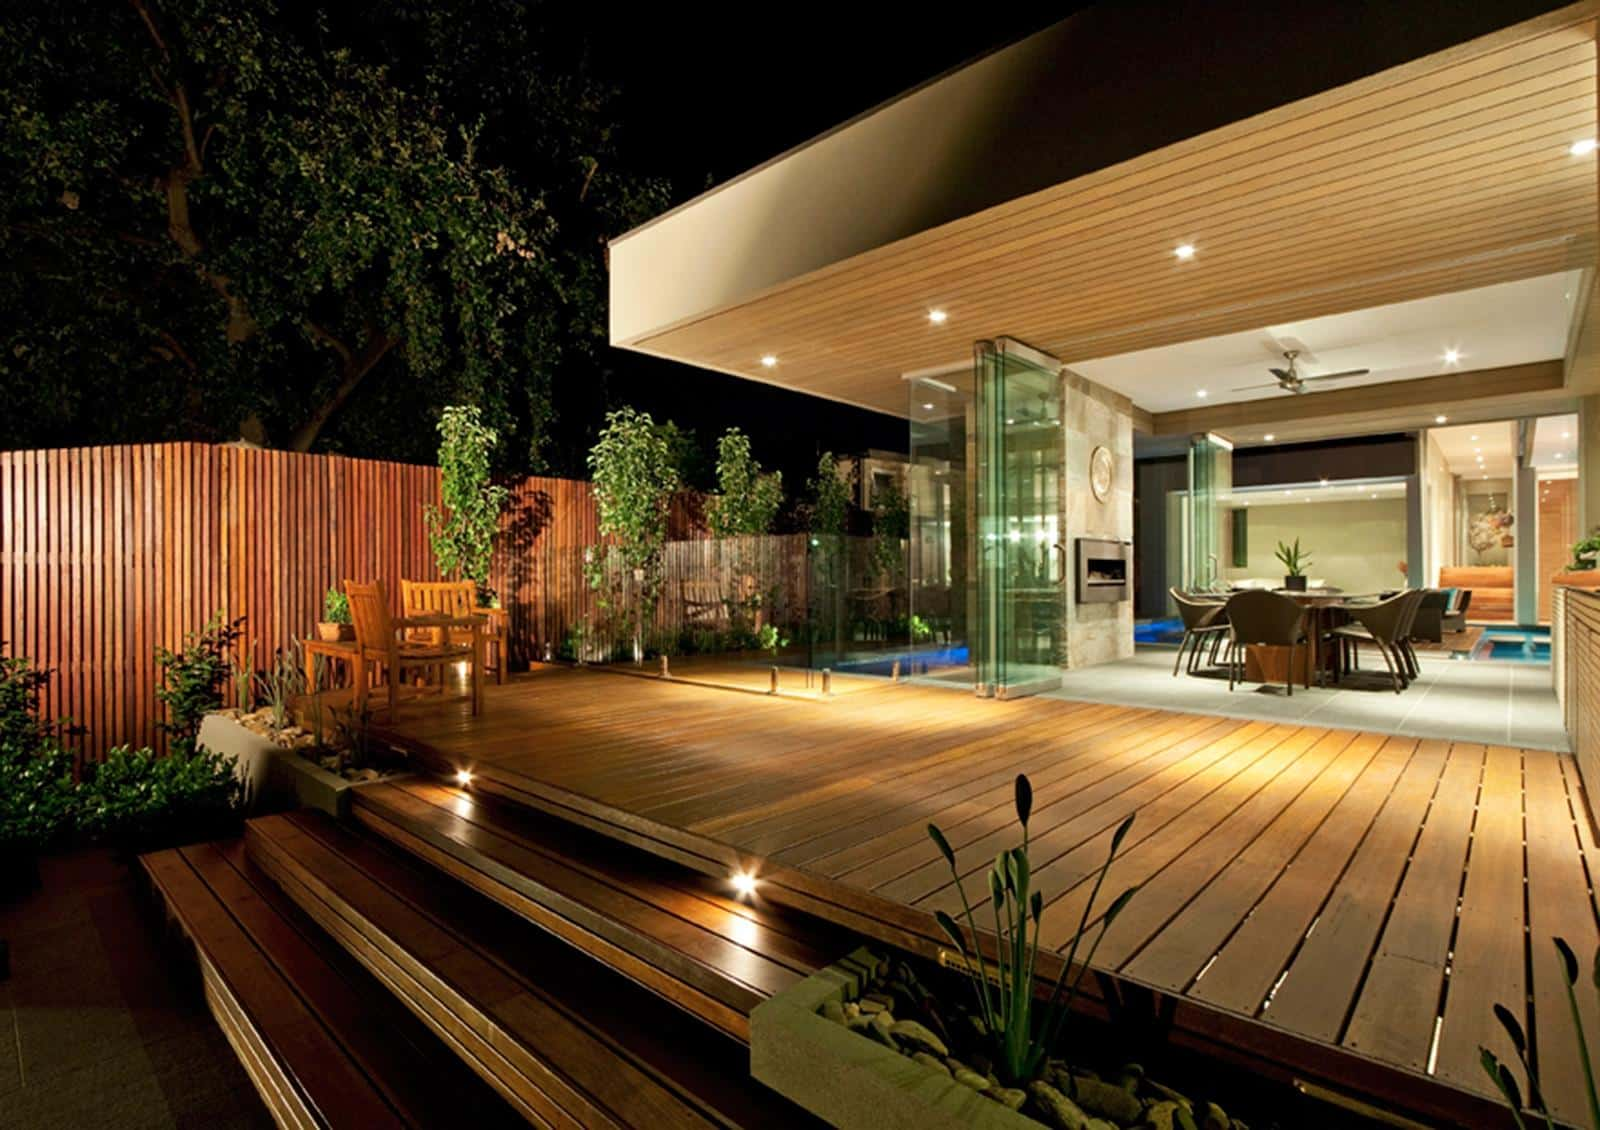 15 Outside Lighting Ideas To Brighten Your Home. Deck lighting of the wooden trimmed house